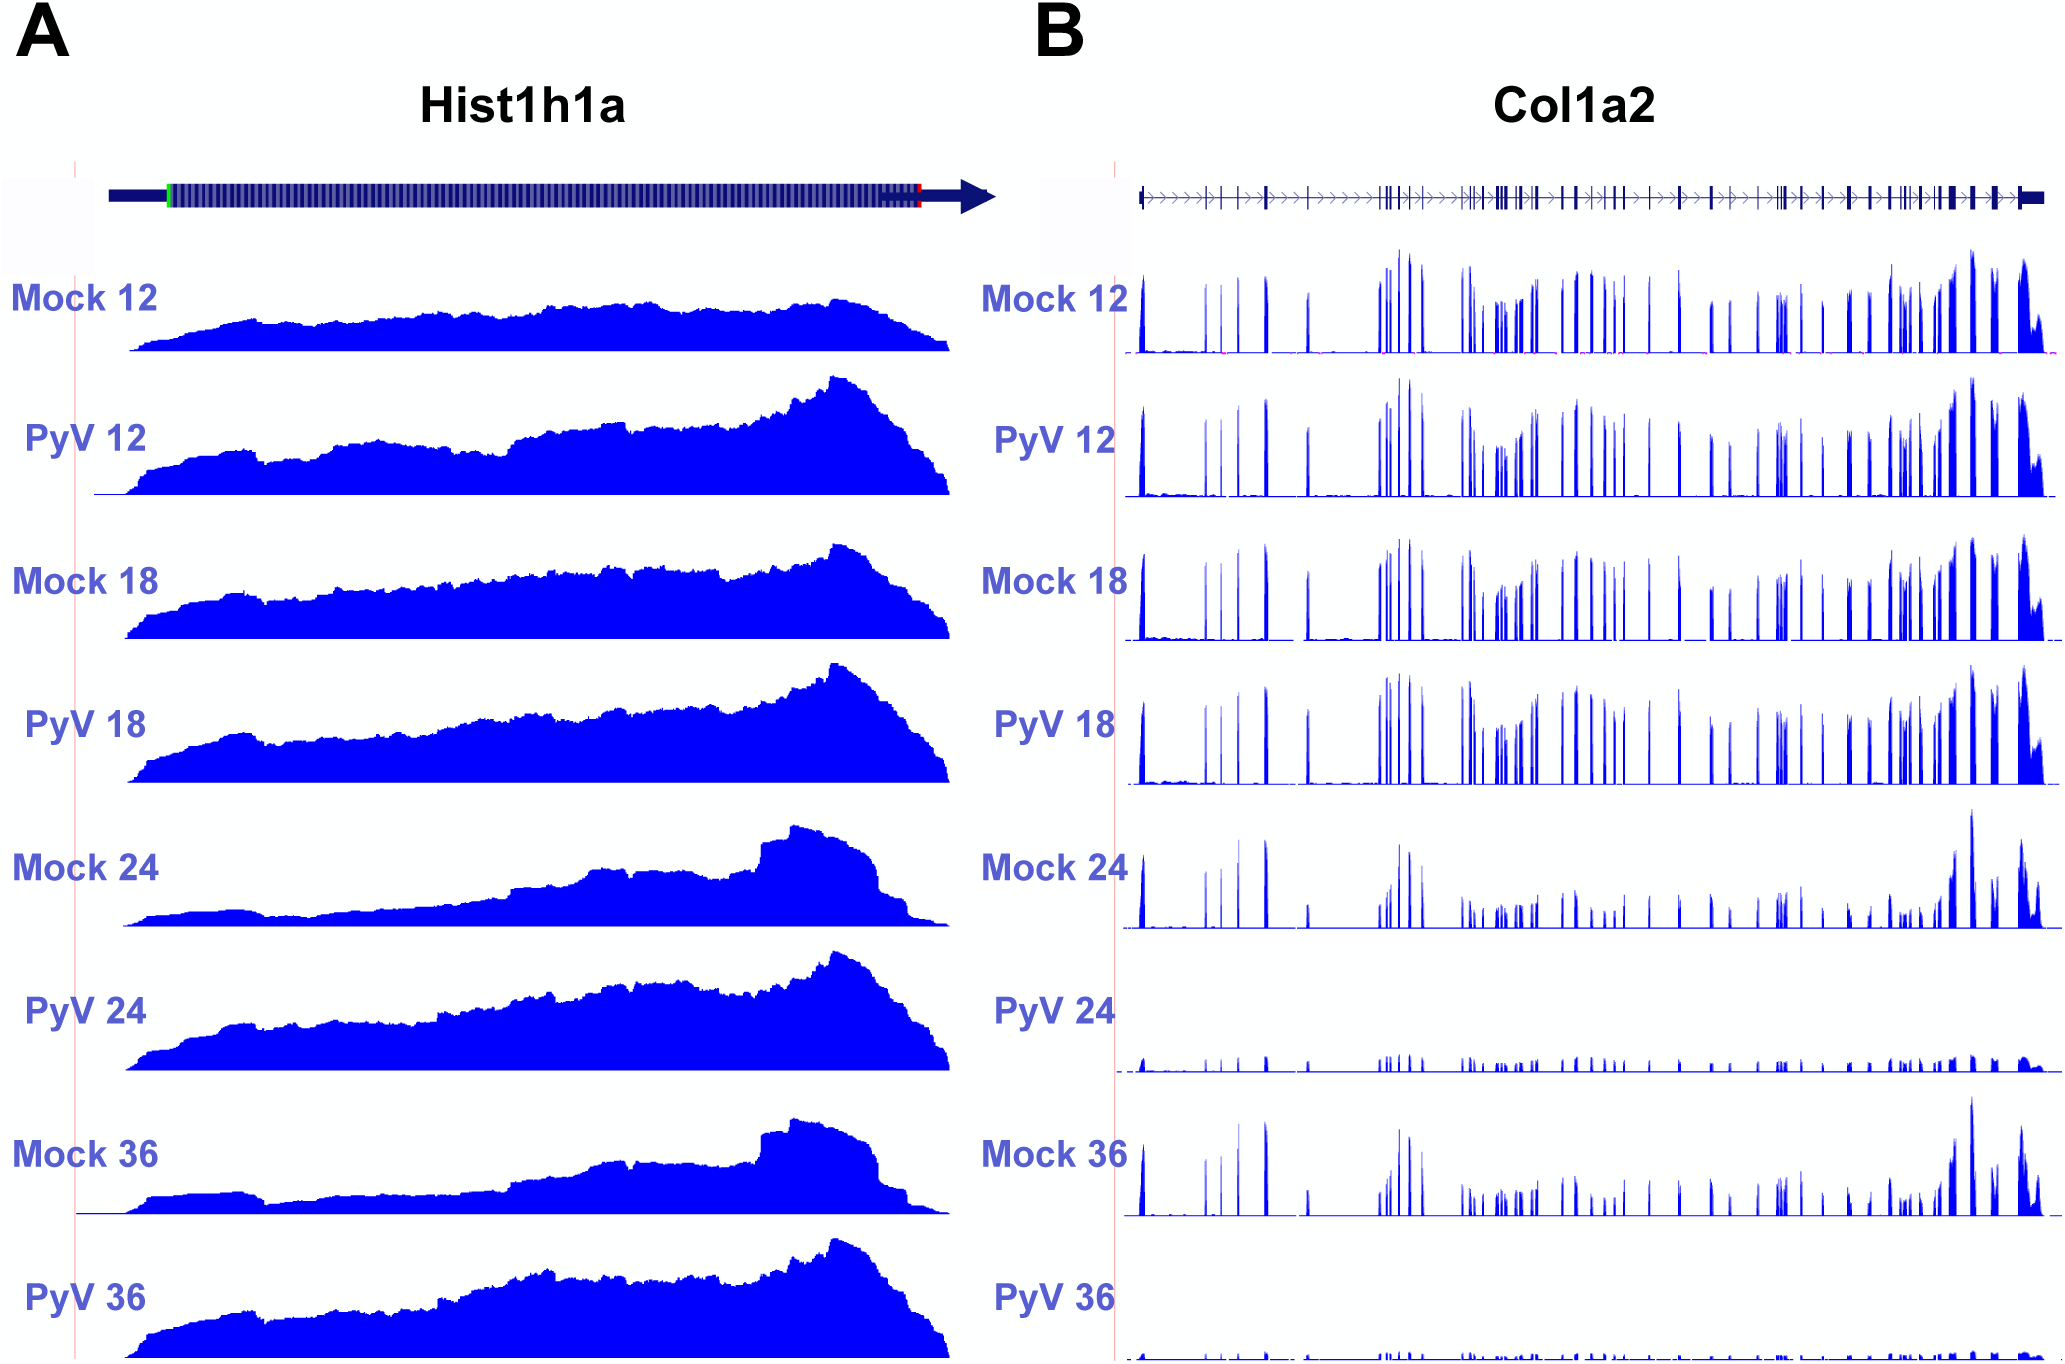 Example of host protein coding transcripts significantly upregulated or downregulated in infected samples compared to mock infection.